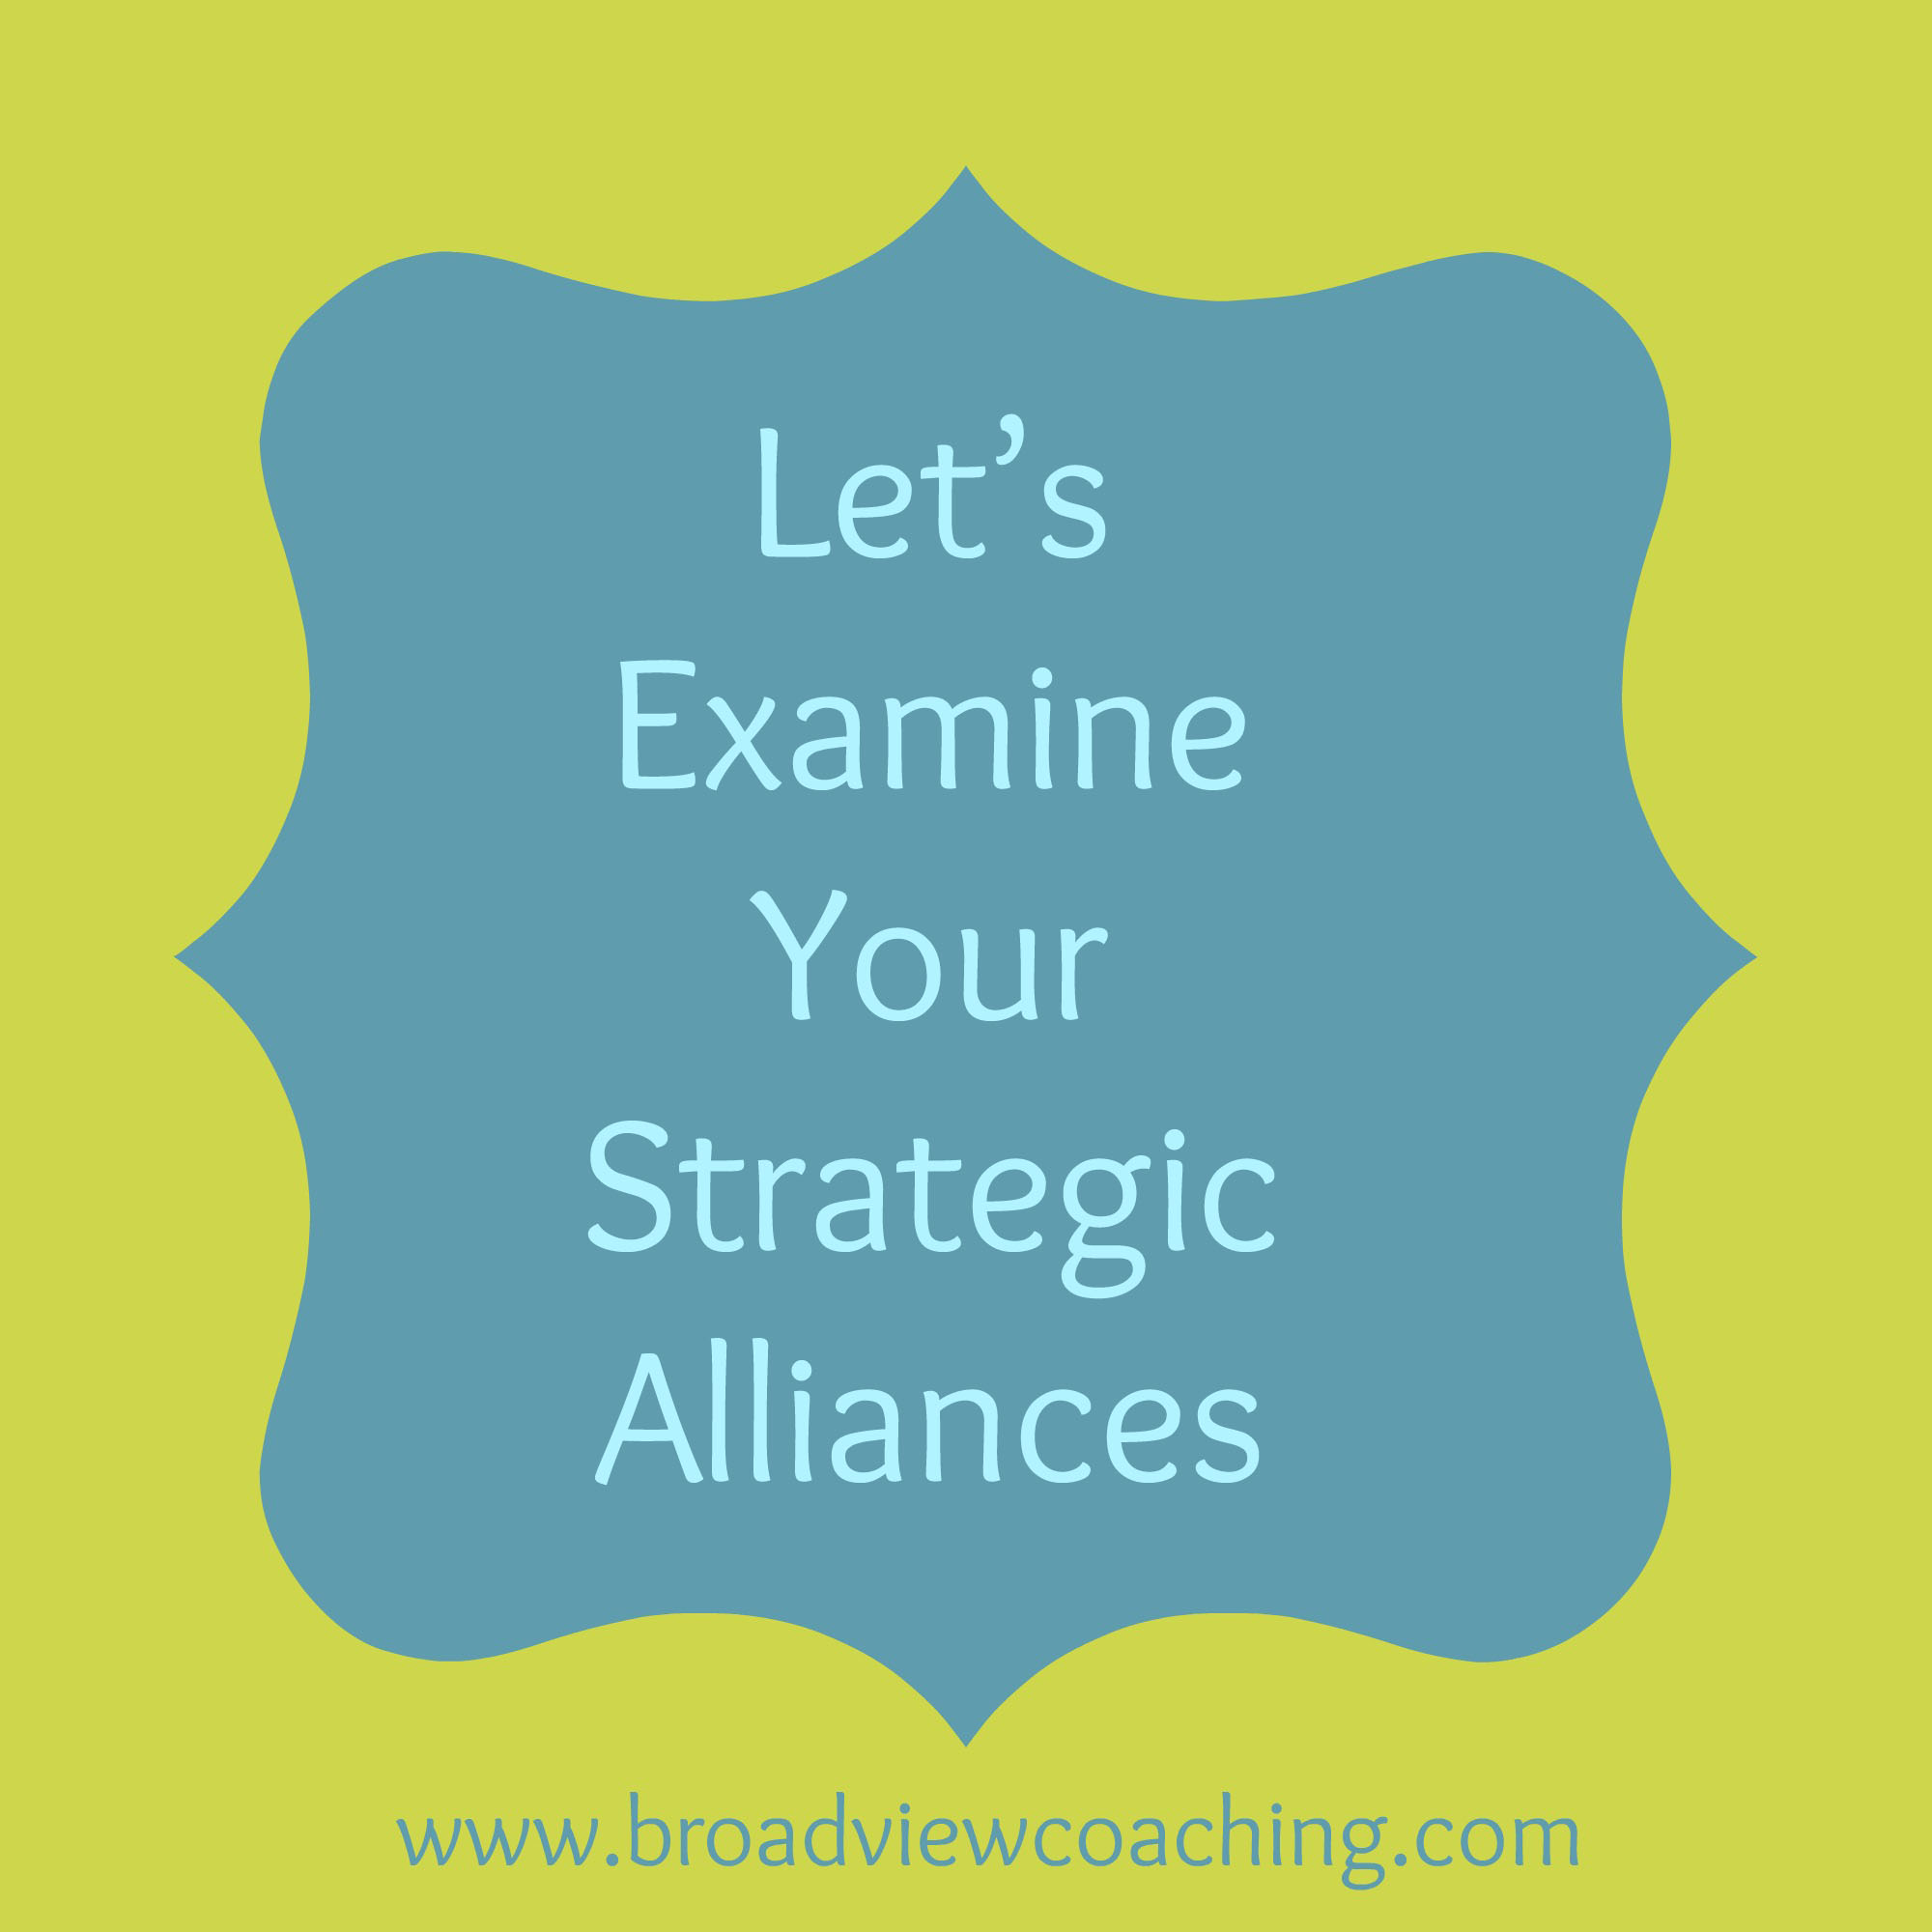 Let's examine your strategic alliances